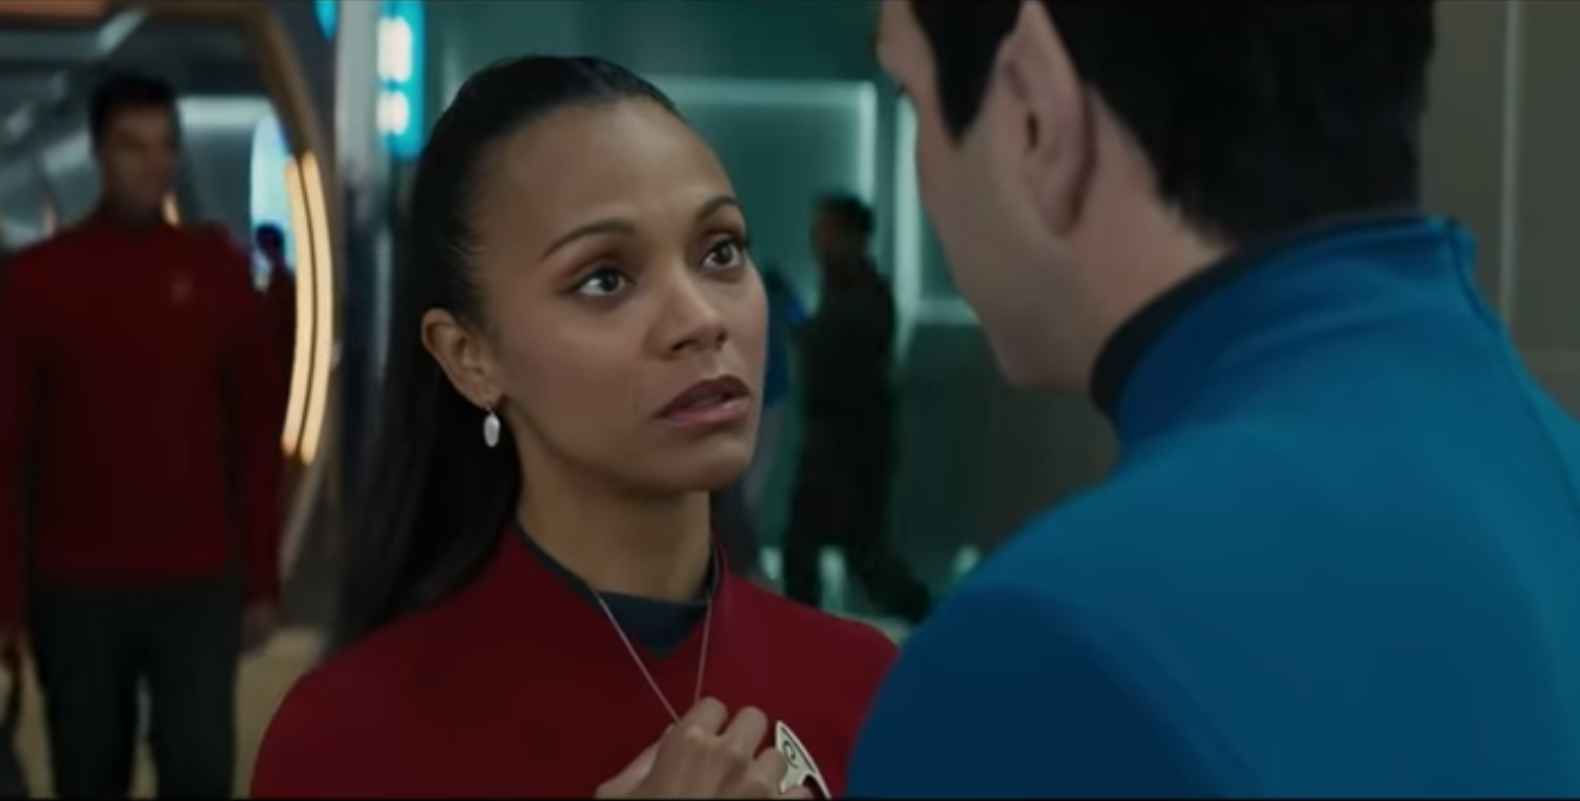 WATCH: 'New Star Trek Beyond' Clip & Character Spotlights